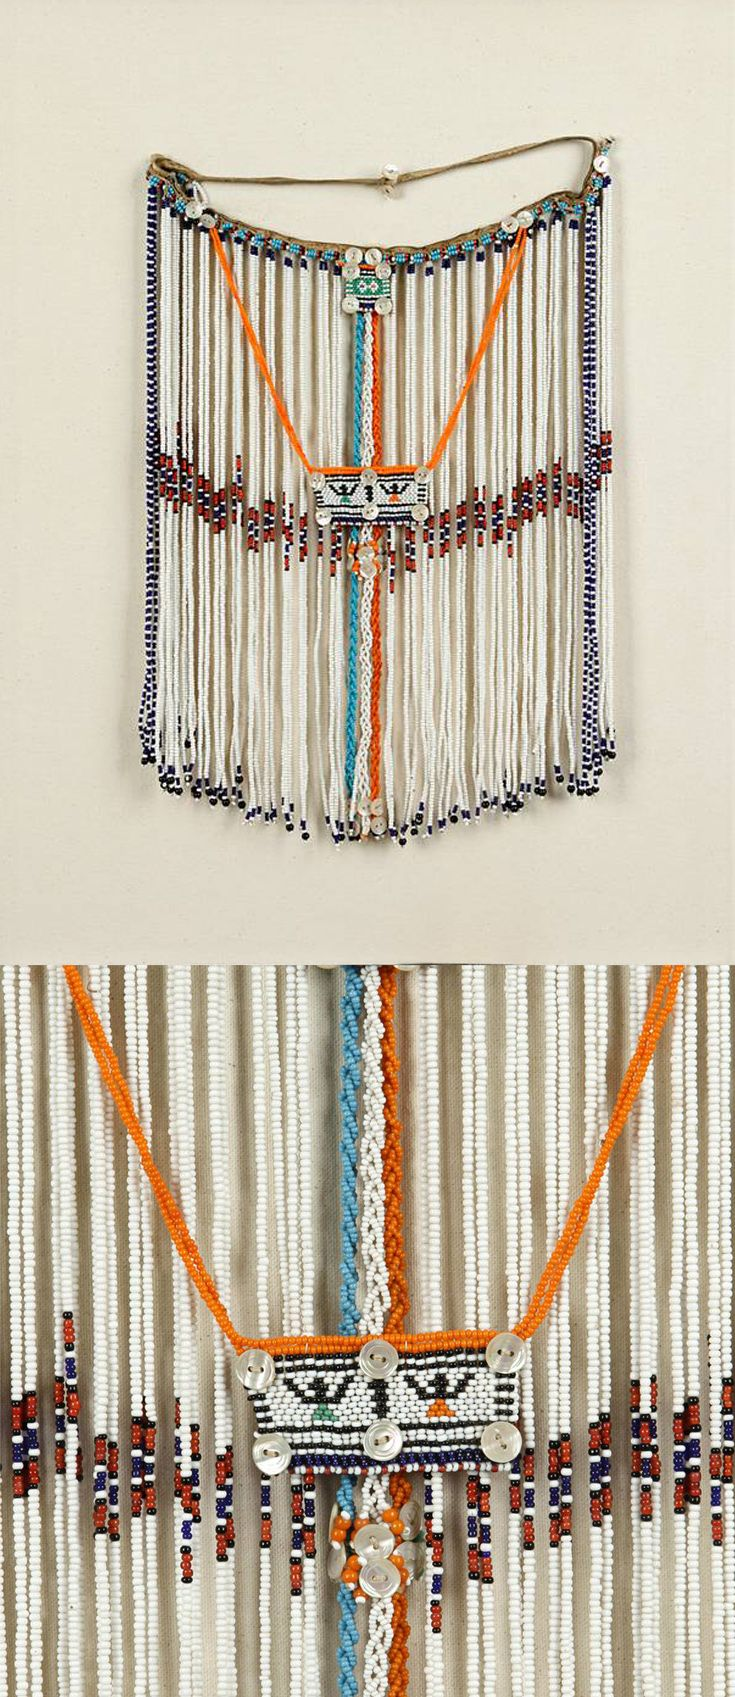 Africa   Wedding veil from the Xhosa people of South Africa   Cloth, glass beads, buttons   20th century